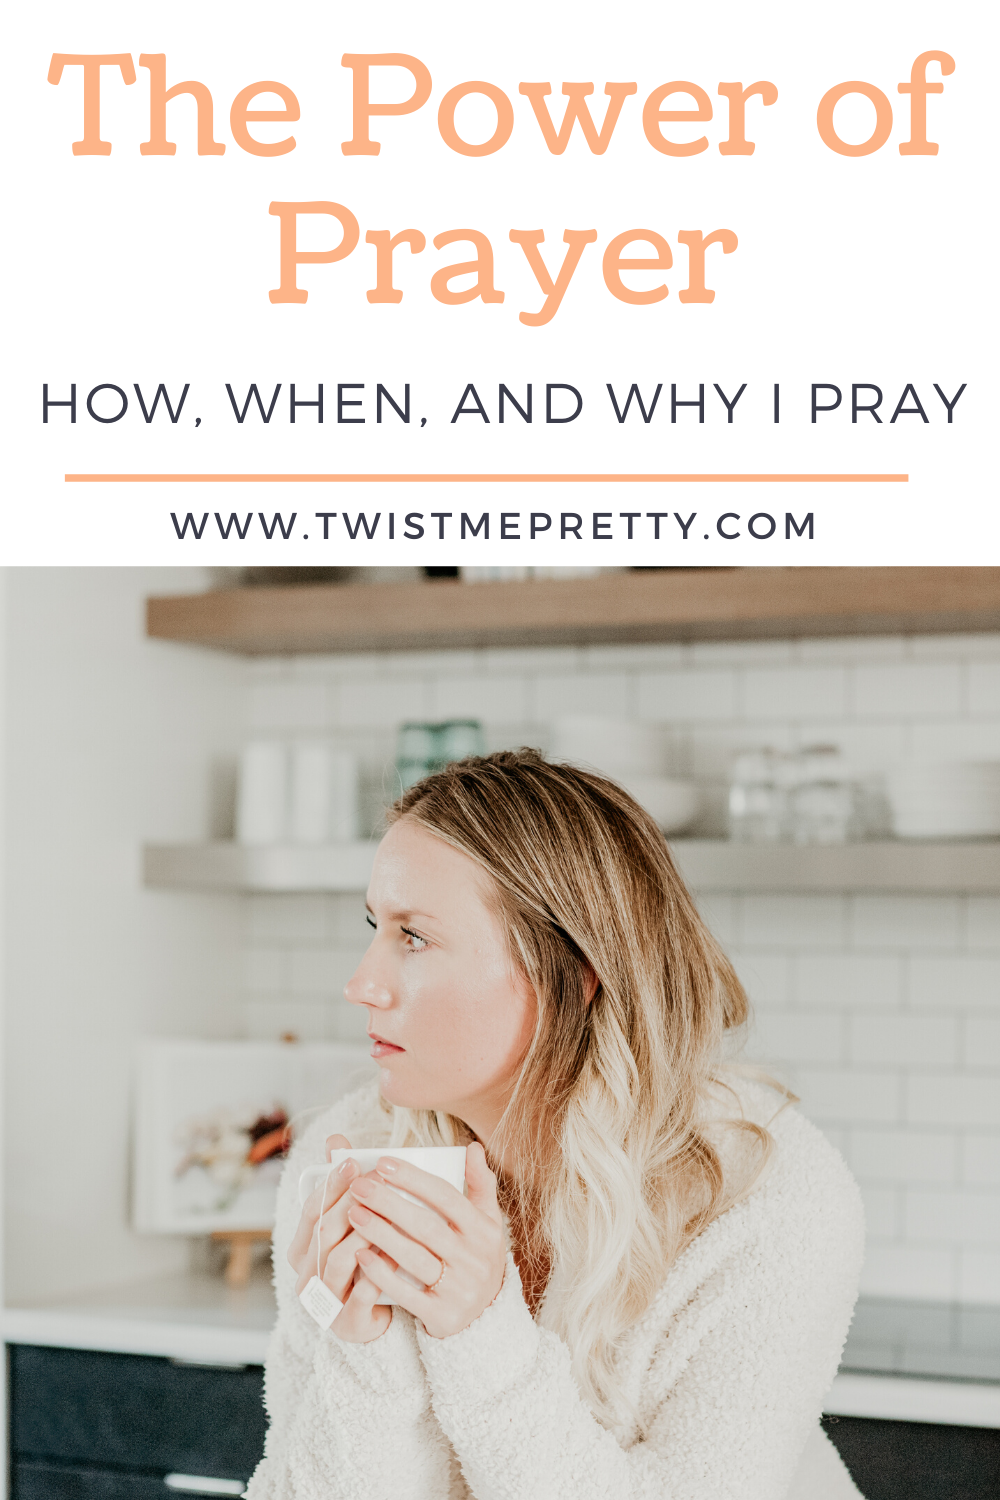 The Power of Prayer. How, Why, and When I Pray. www.twistmepretty.com